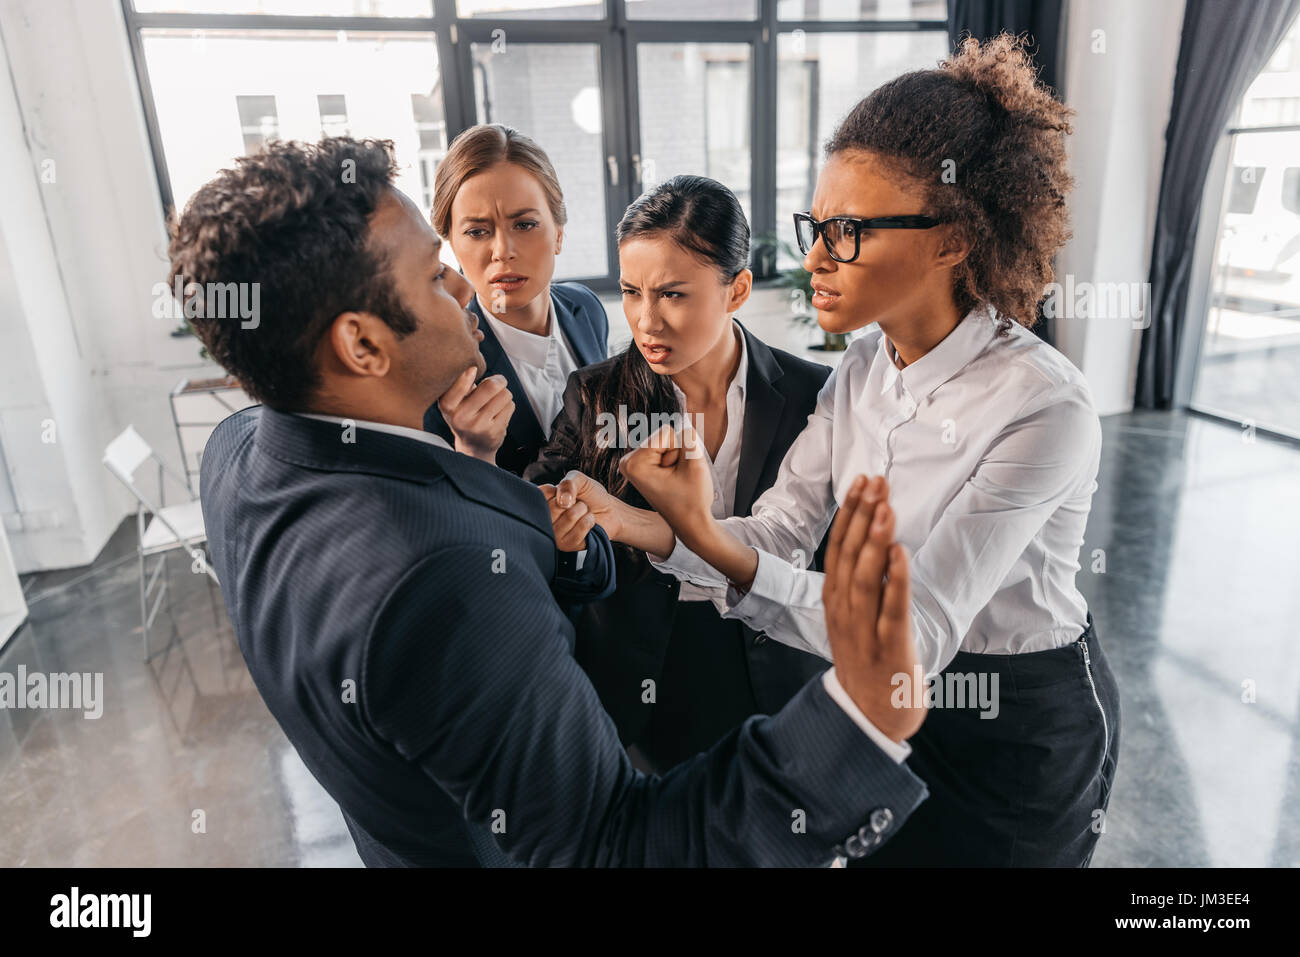 young emotional businesspeople in formalwear quarrelling at modern office, business team meeting - Stock Image